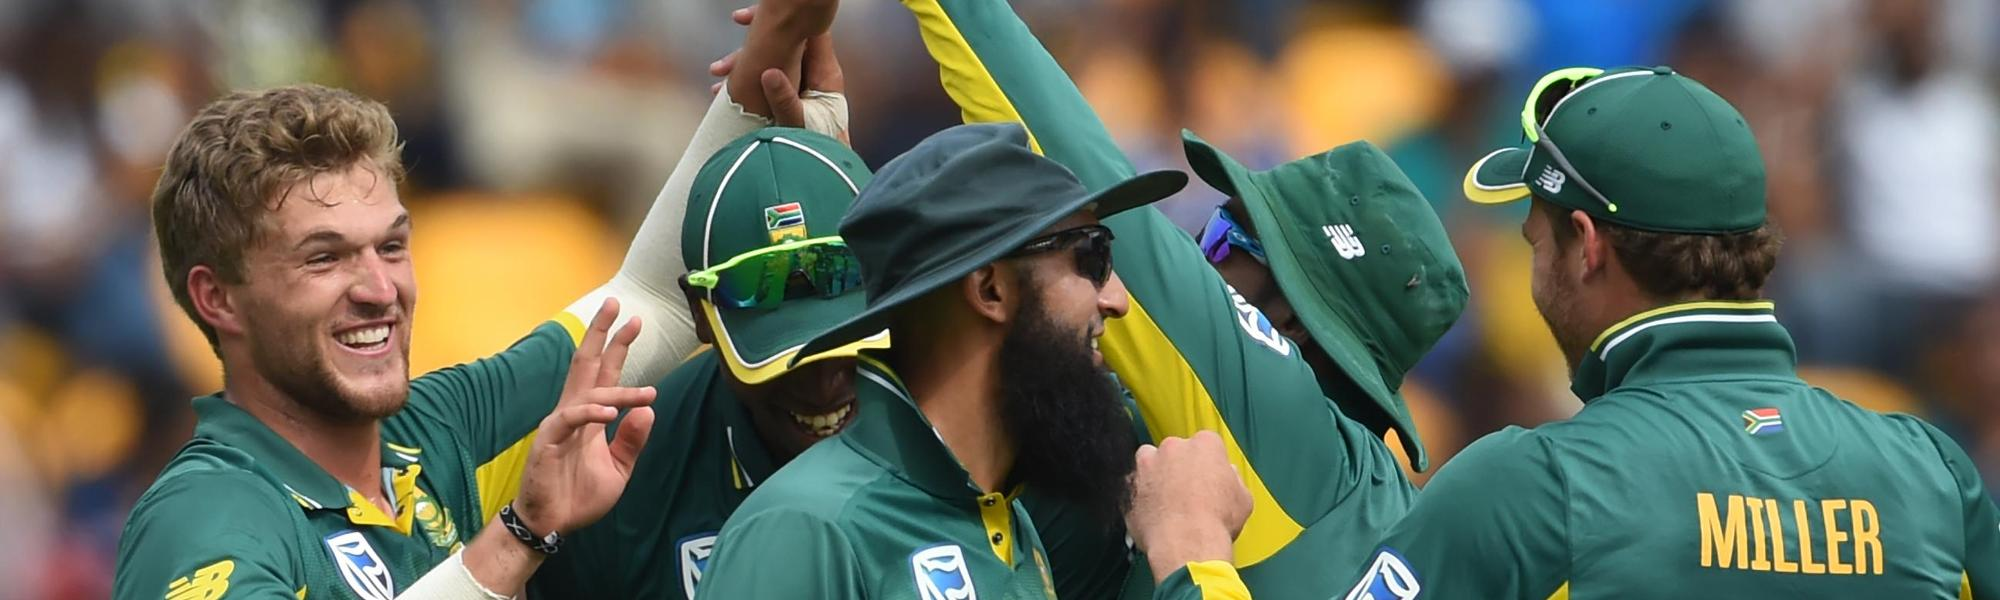 South Africa had Sri Lanka reduced to 81/4 within 12 overs